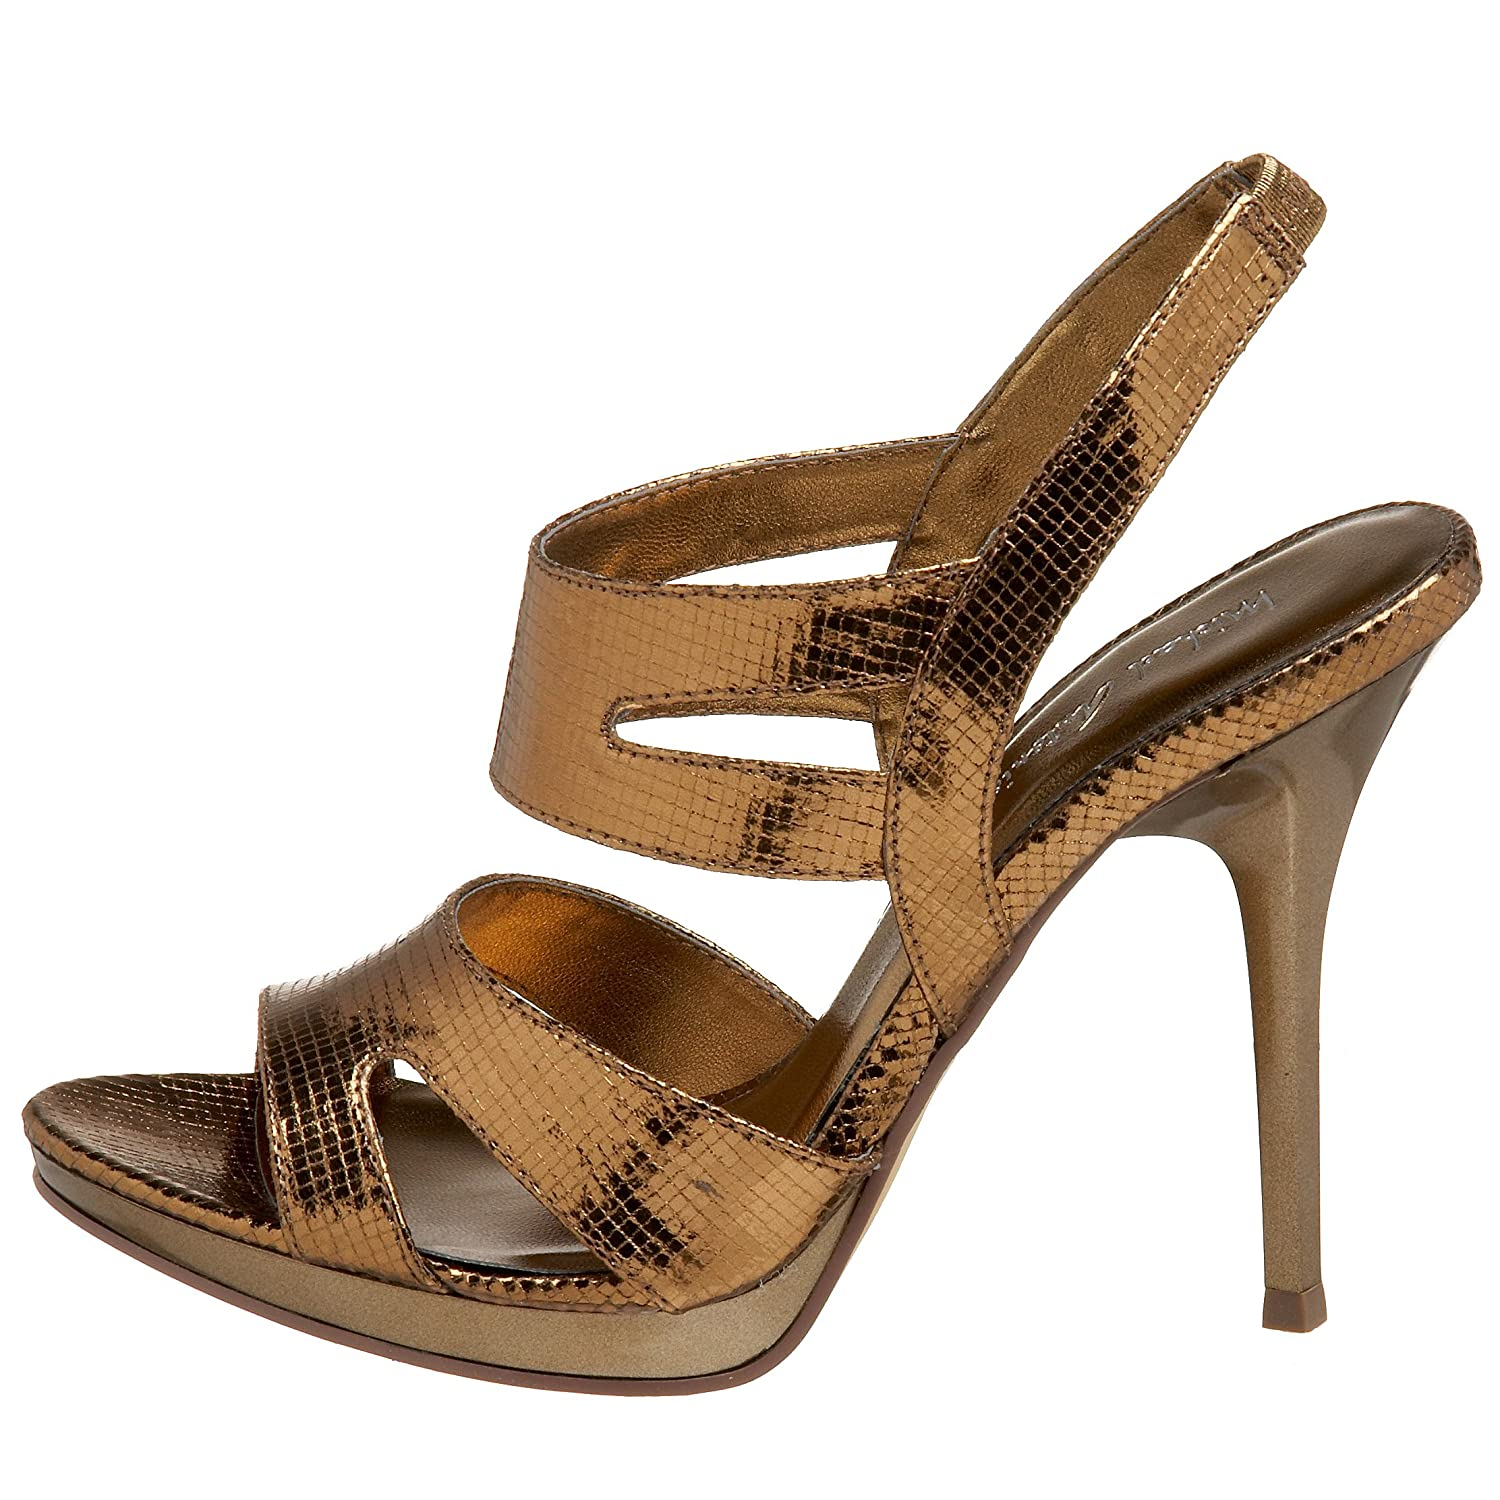 Michael Antonio Women&#039;s Aureta Platform Sandal from endless.com